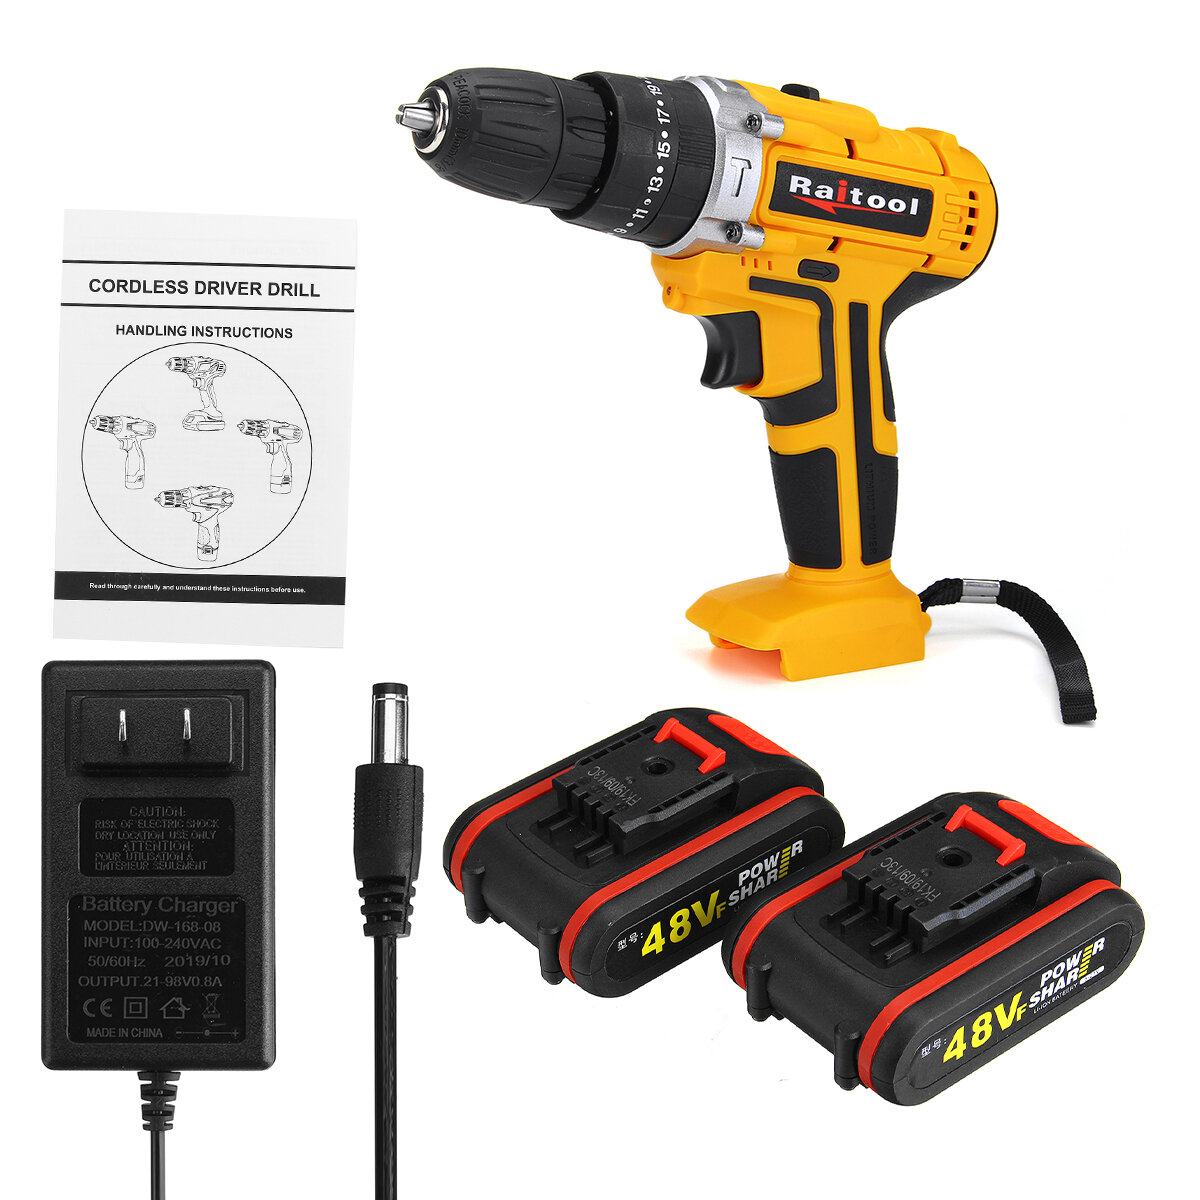 48V 3 In 1 Cordless Power Drills 15+1 Torque Drilling Tool Dual Speed Electric Screwdriver Drill W/ 1 or 2 Li-ion Battery - 2